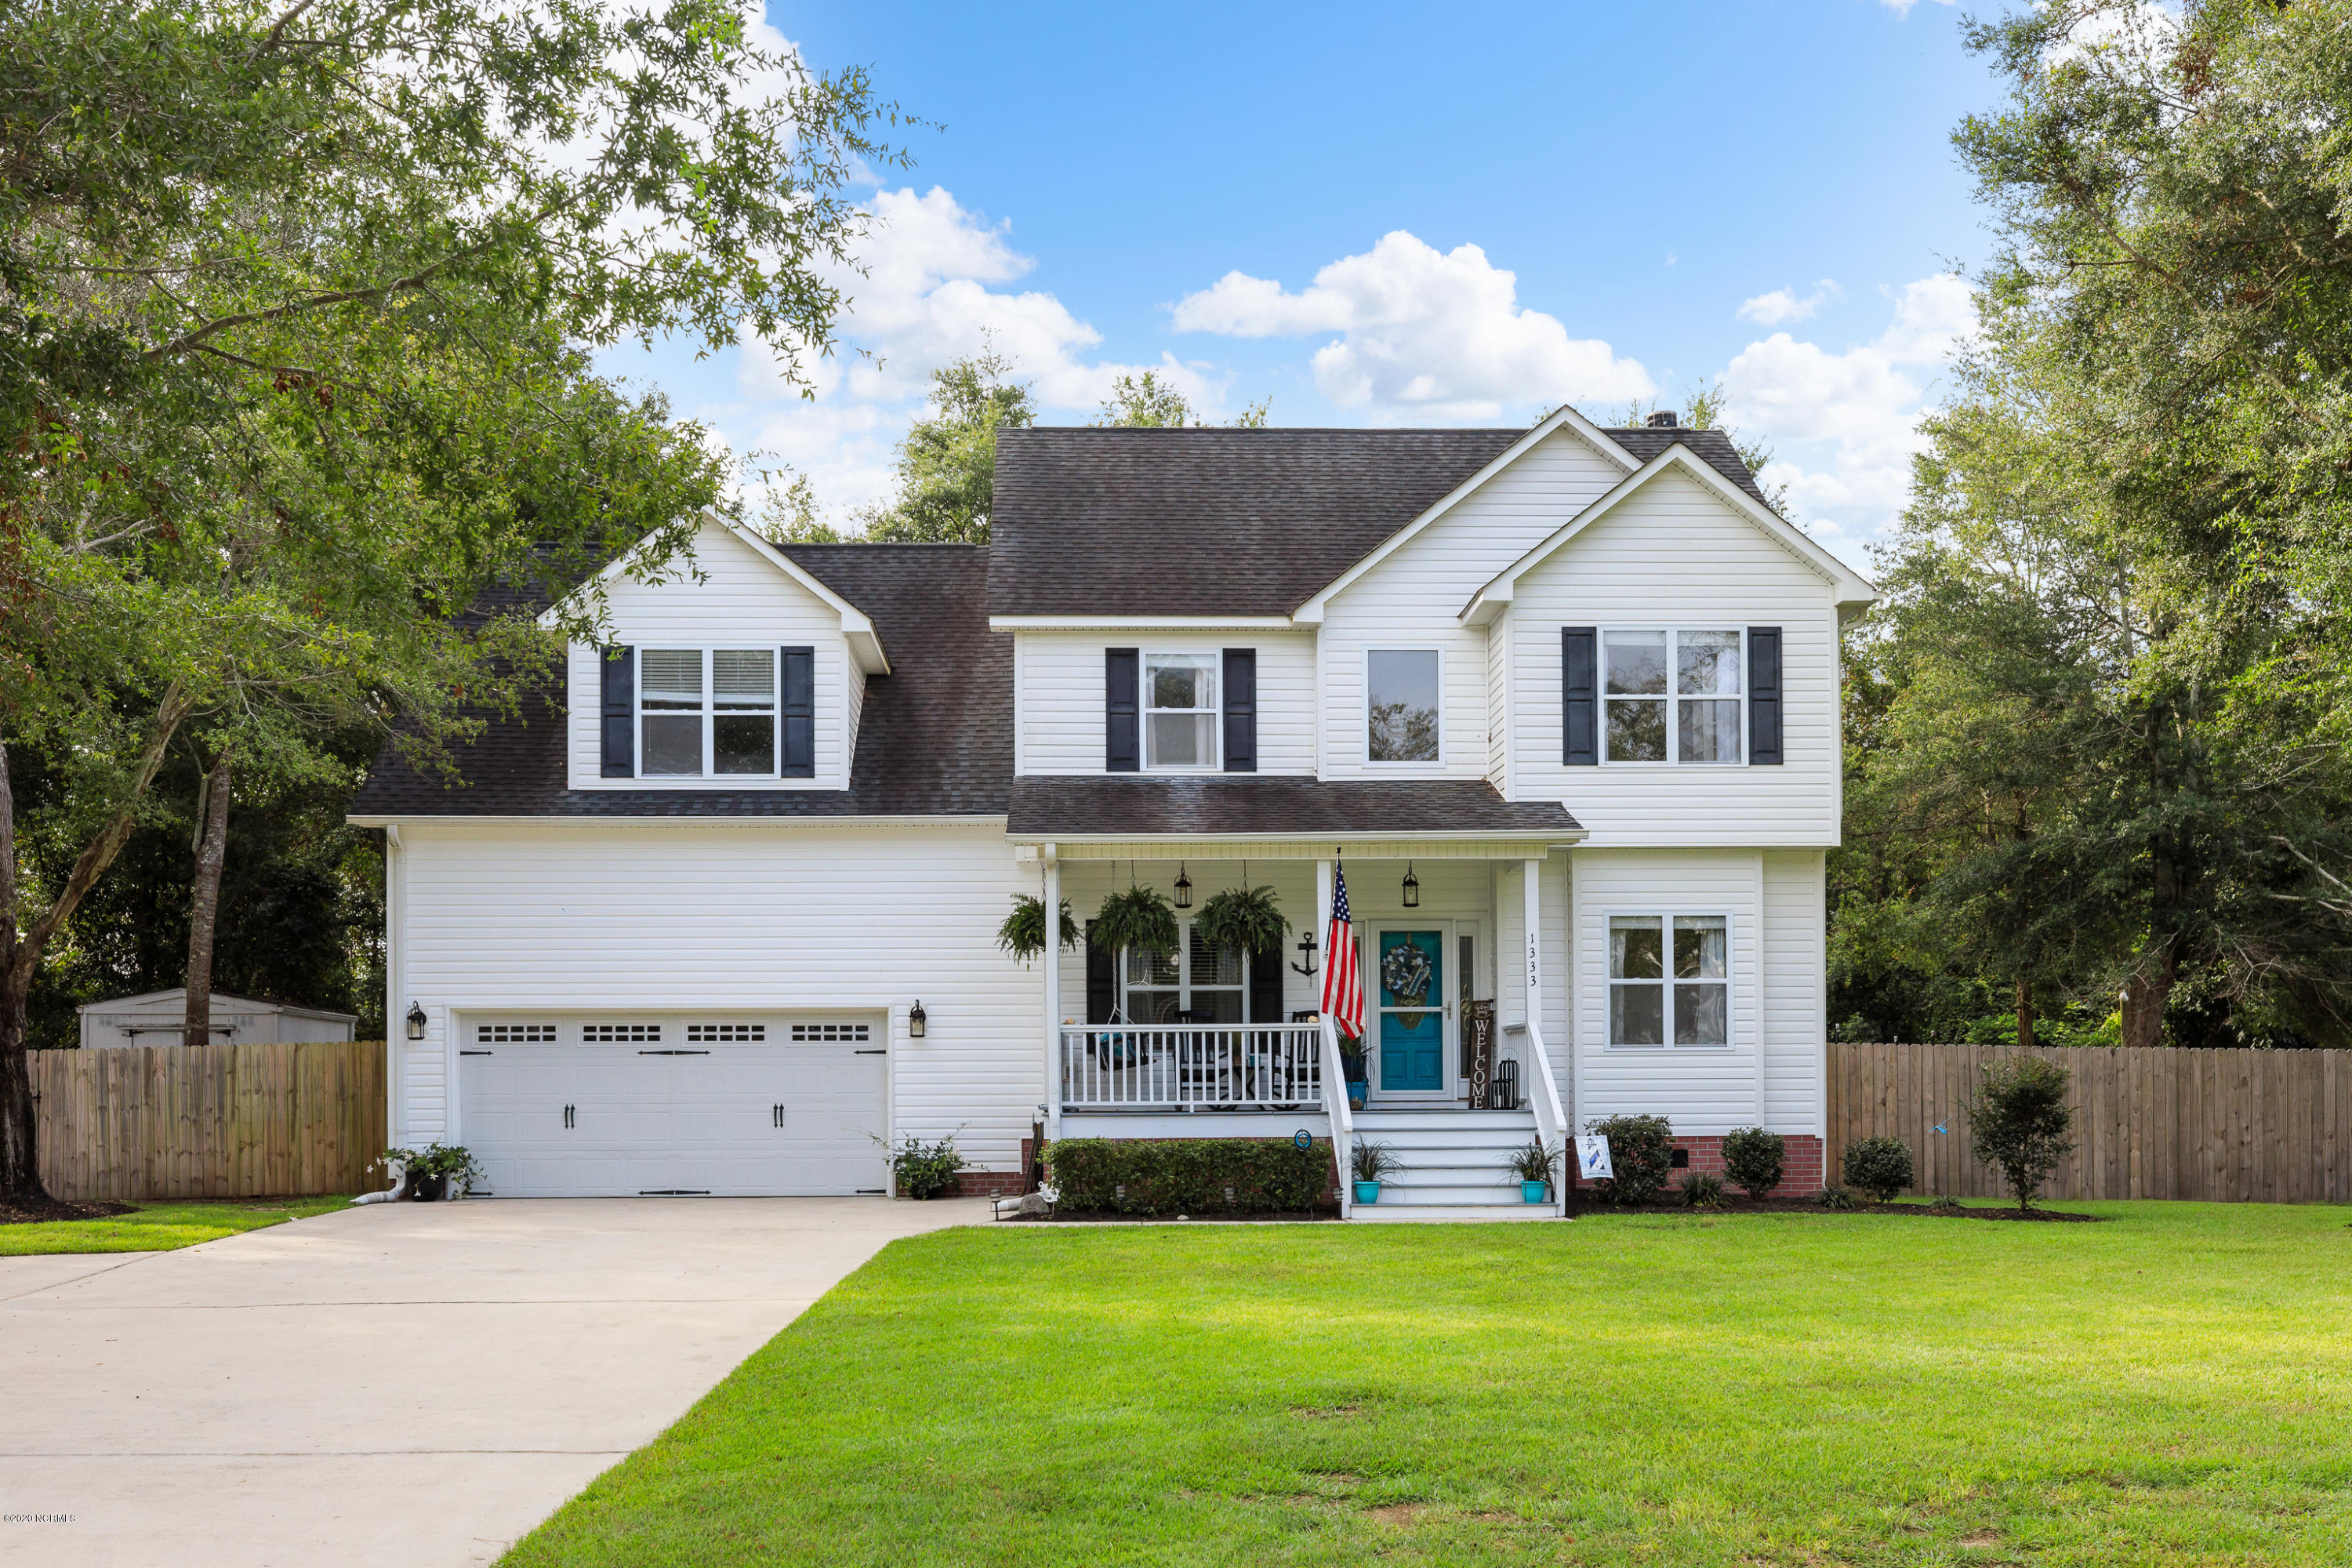 1333 Chadwick Shores Drive, Sneads Ferry, North Carolina 28460, 4 Bedrooms Bedrooms, ,2 BathroomsBathrooms,Residential,For Sale,Chadwick Shores,100235692